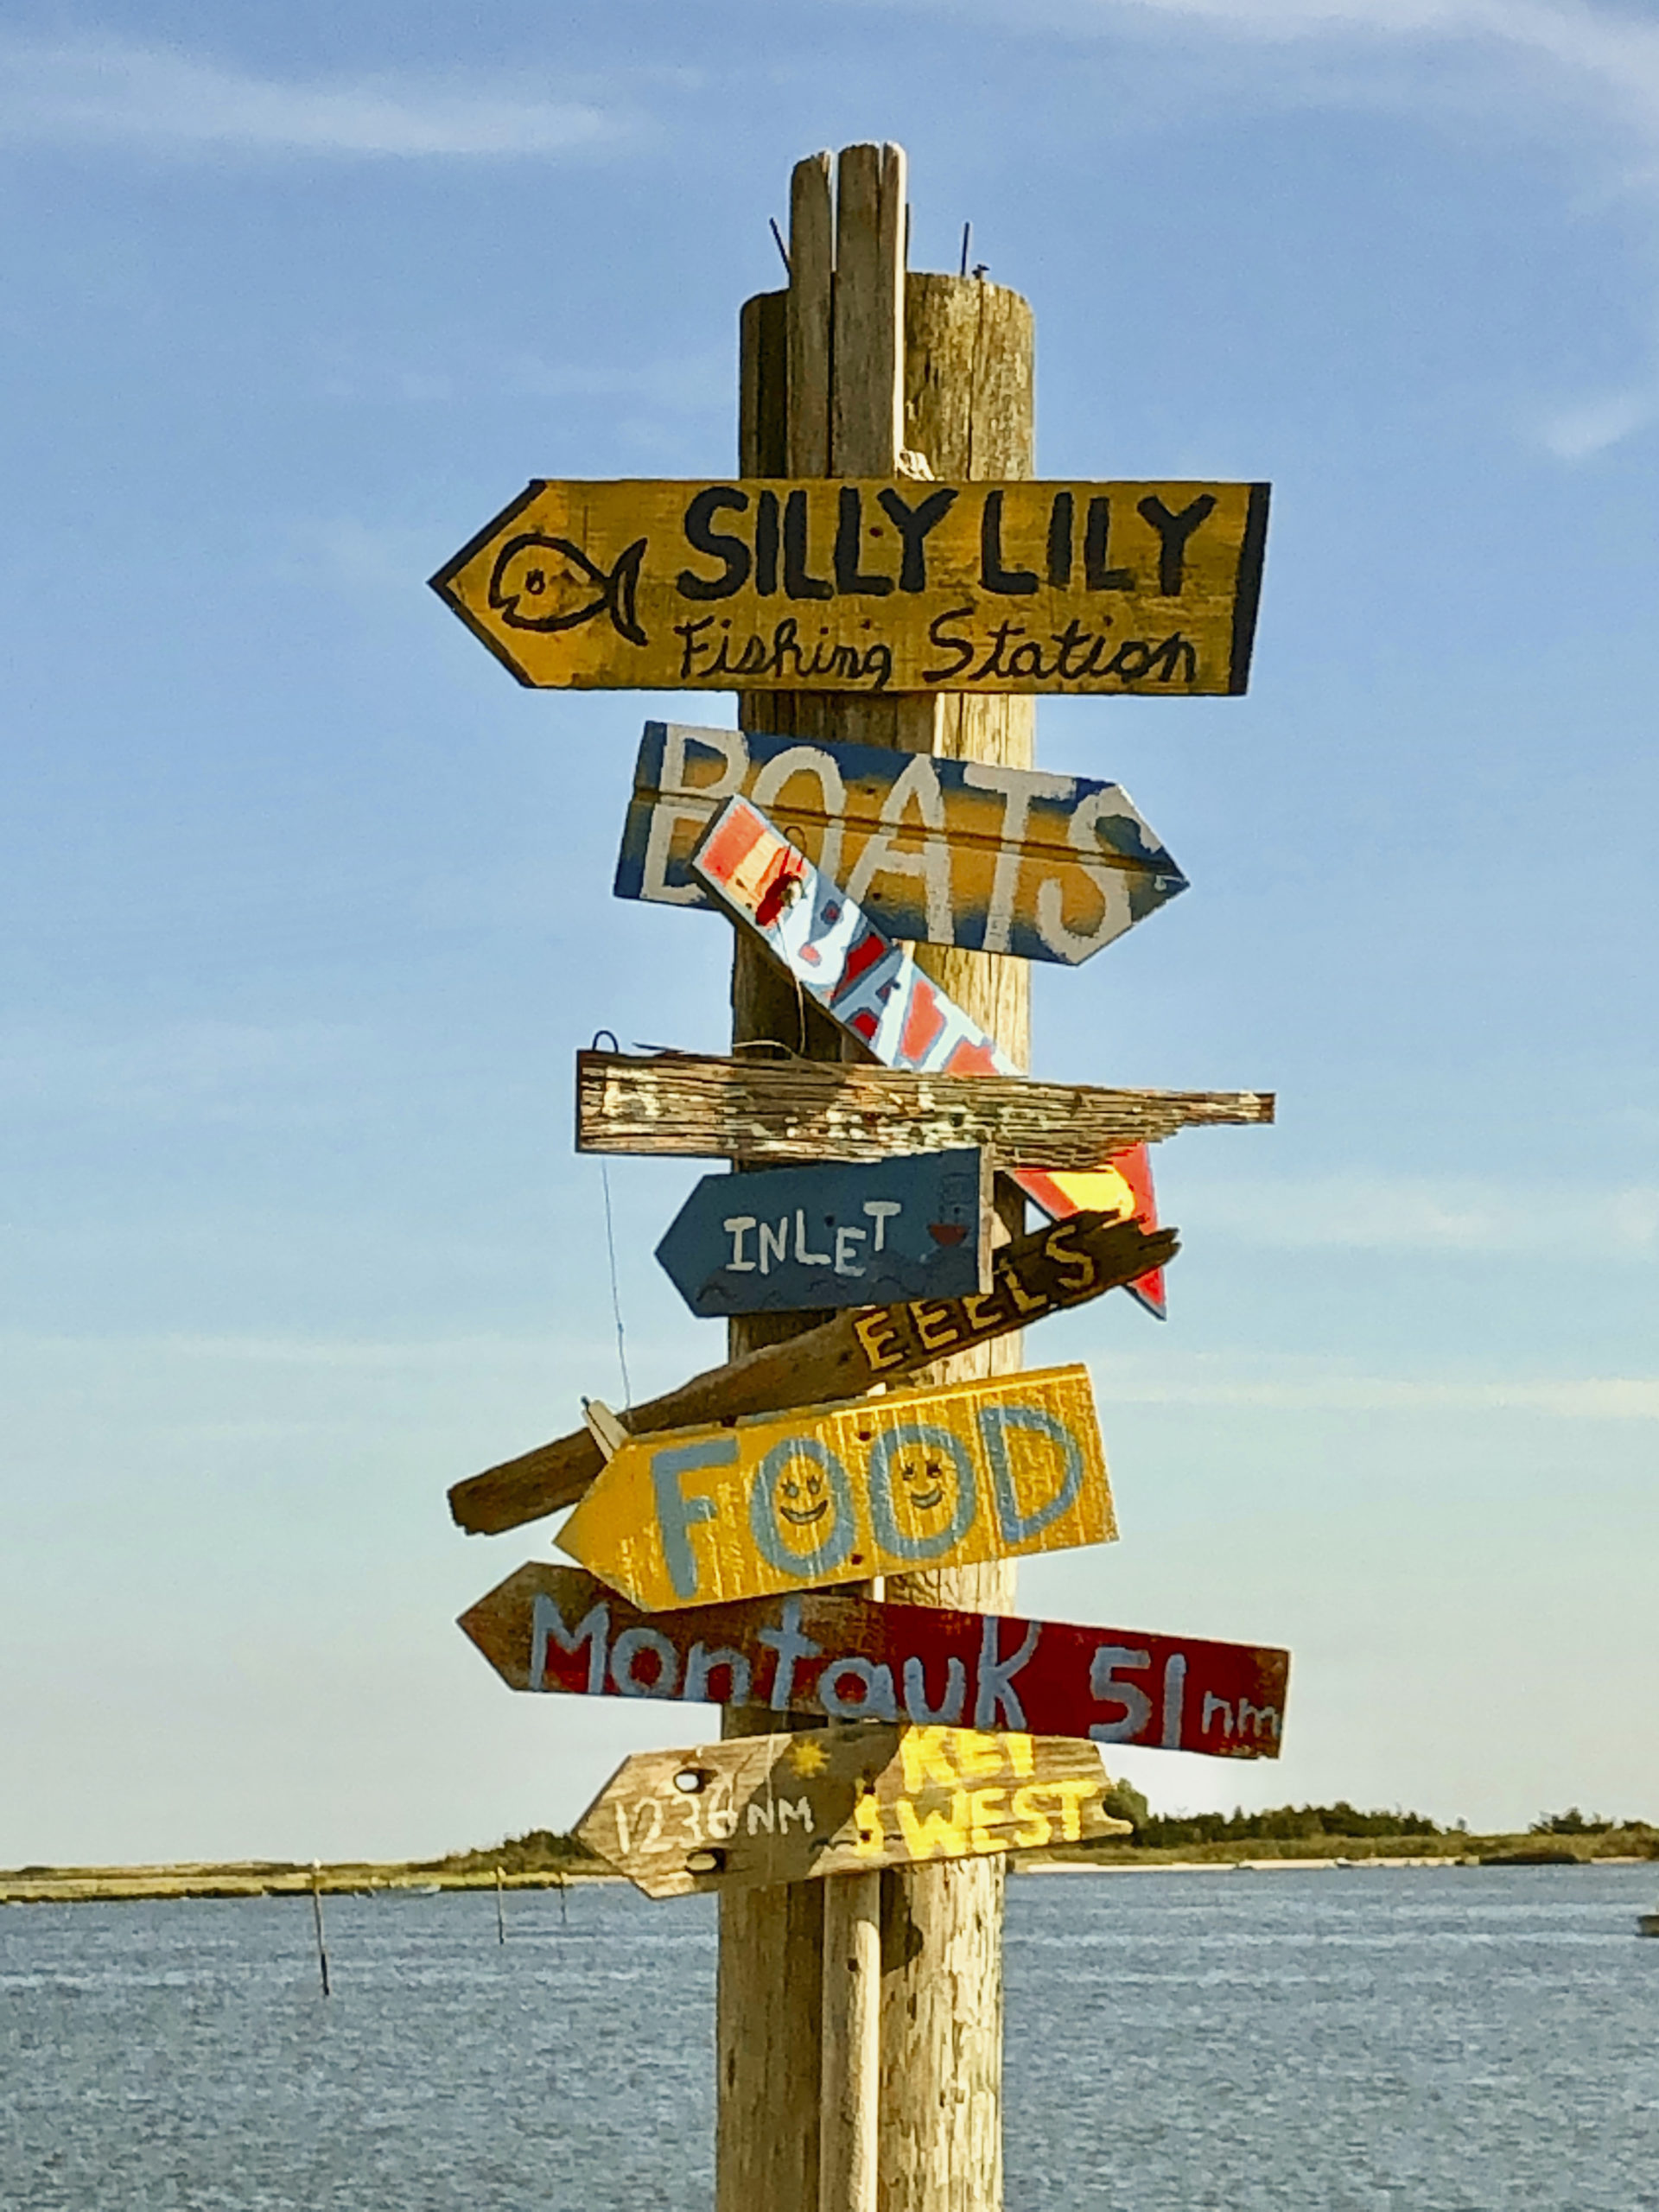 Silly Lily is a 1930s fishing station in East Moriches that has been brought back to life.